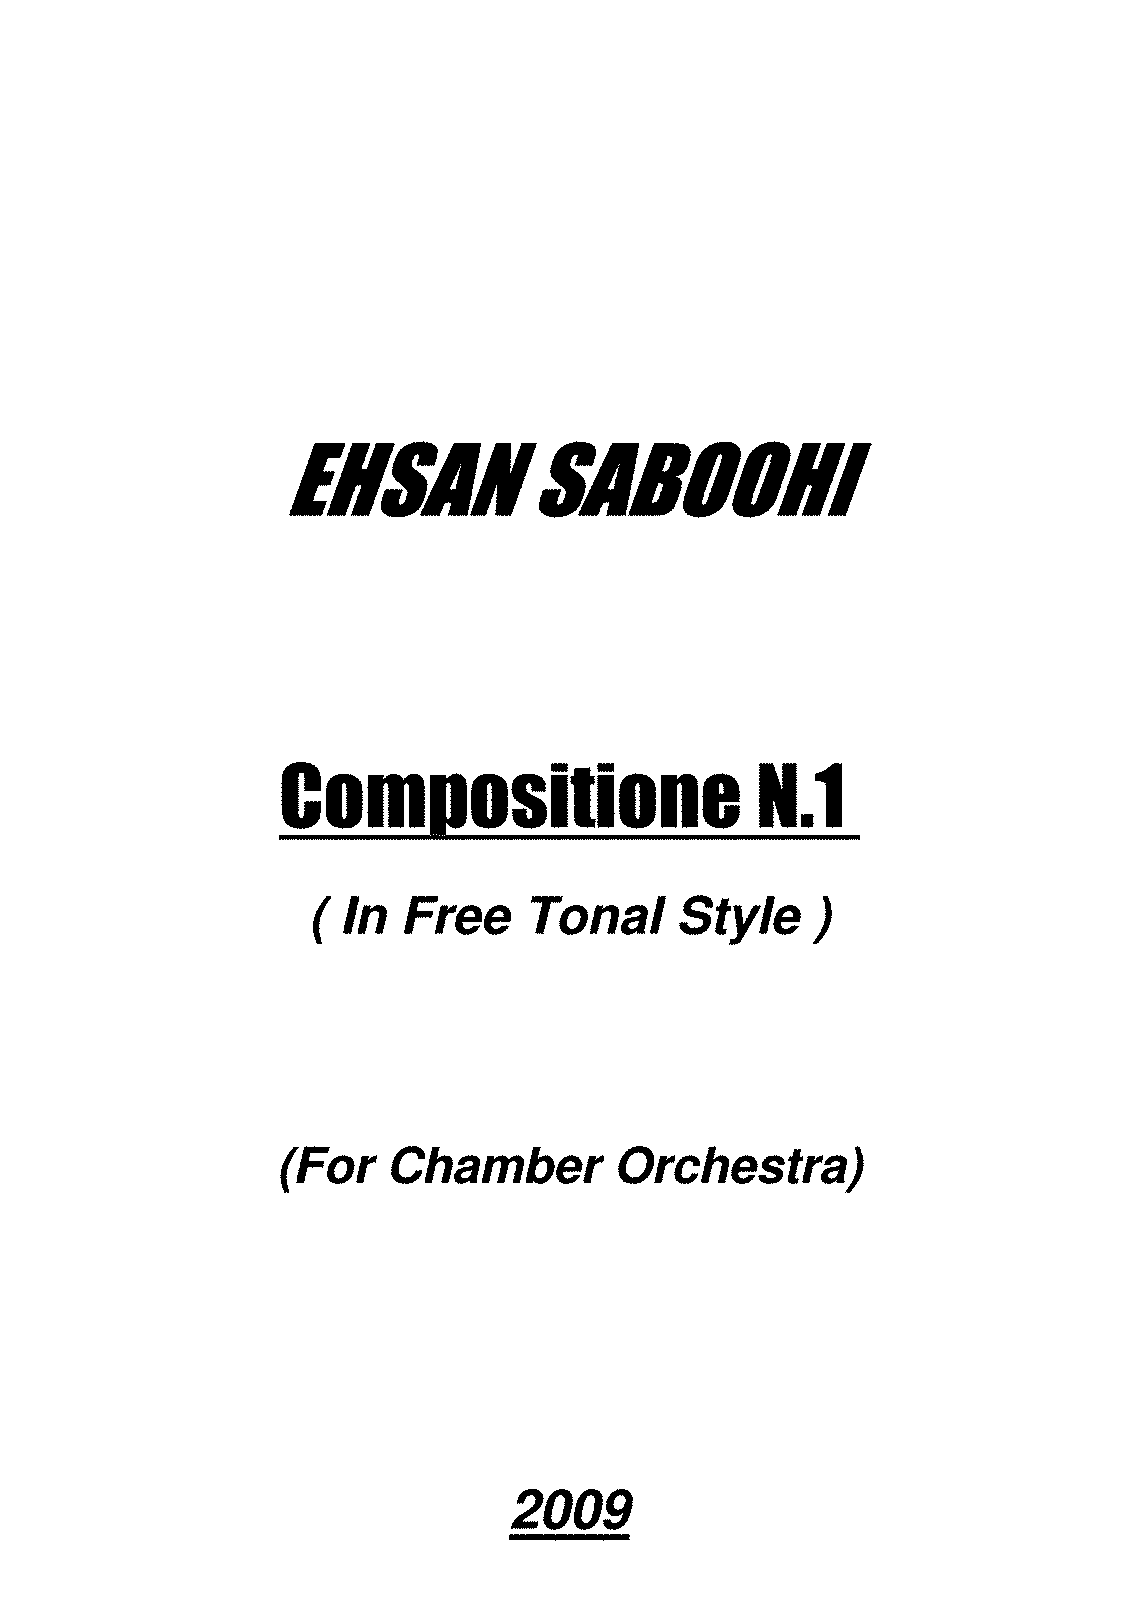 PMLP69335-Compositione N.1 (For Chamber Orchestra).pdf